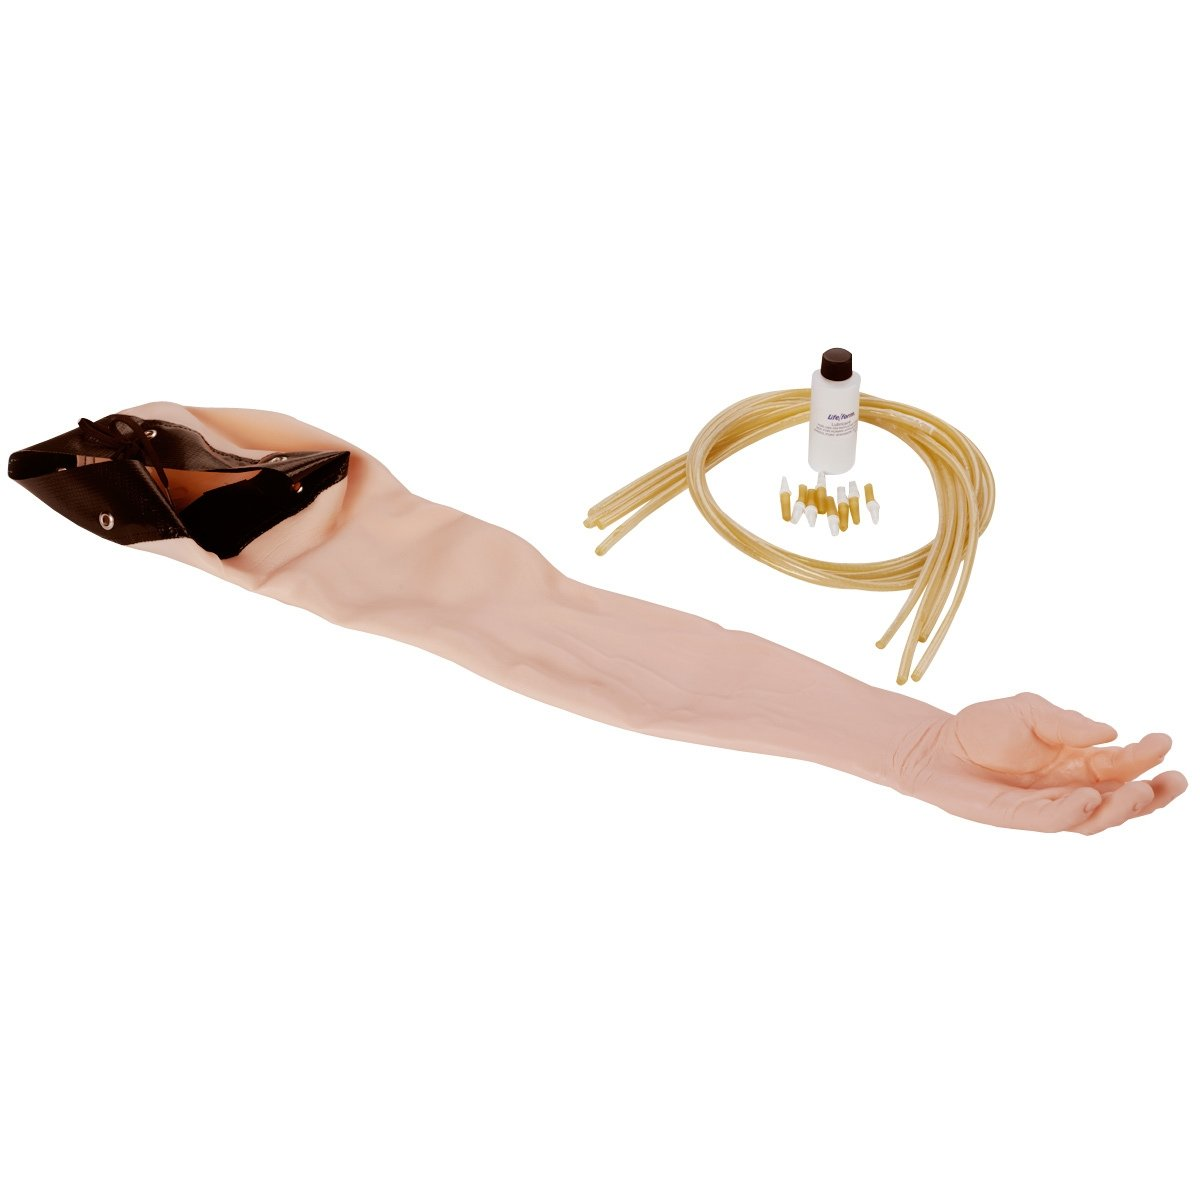 Life/form Advanced Venipuncture and Injection Arm: Skin and Vein Replacement Kit - Light